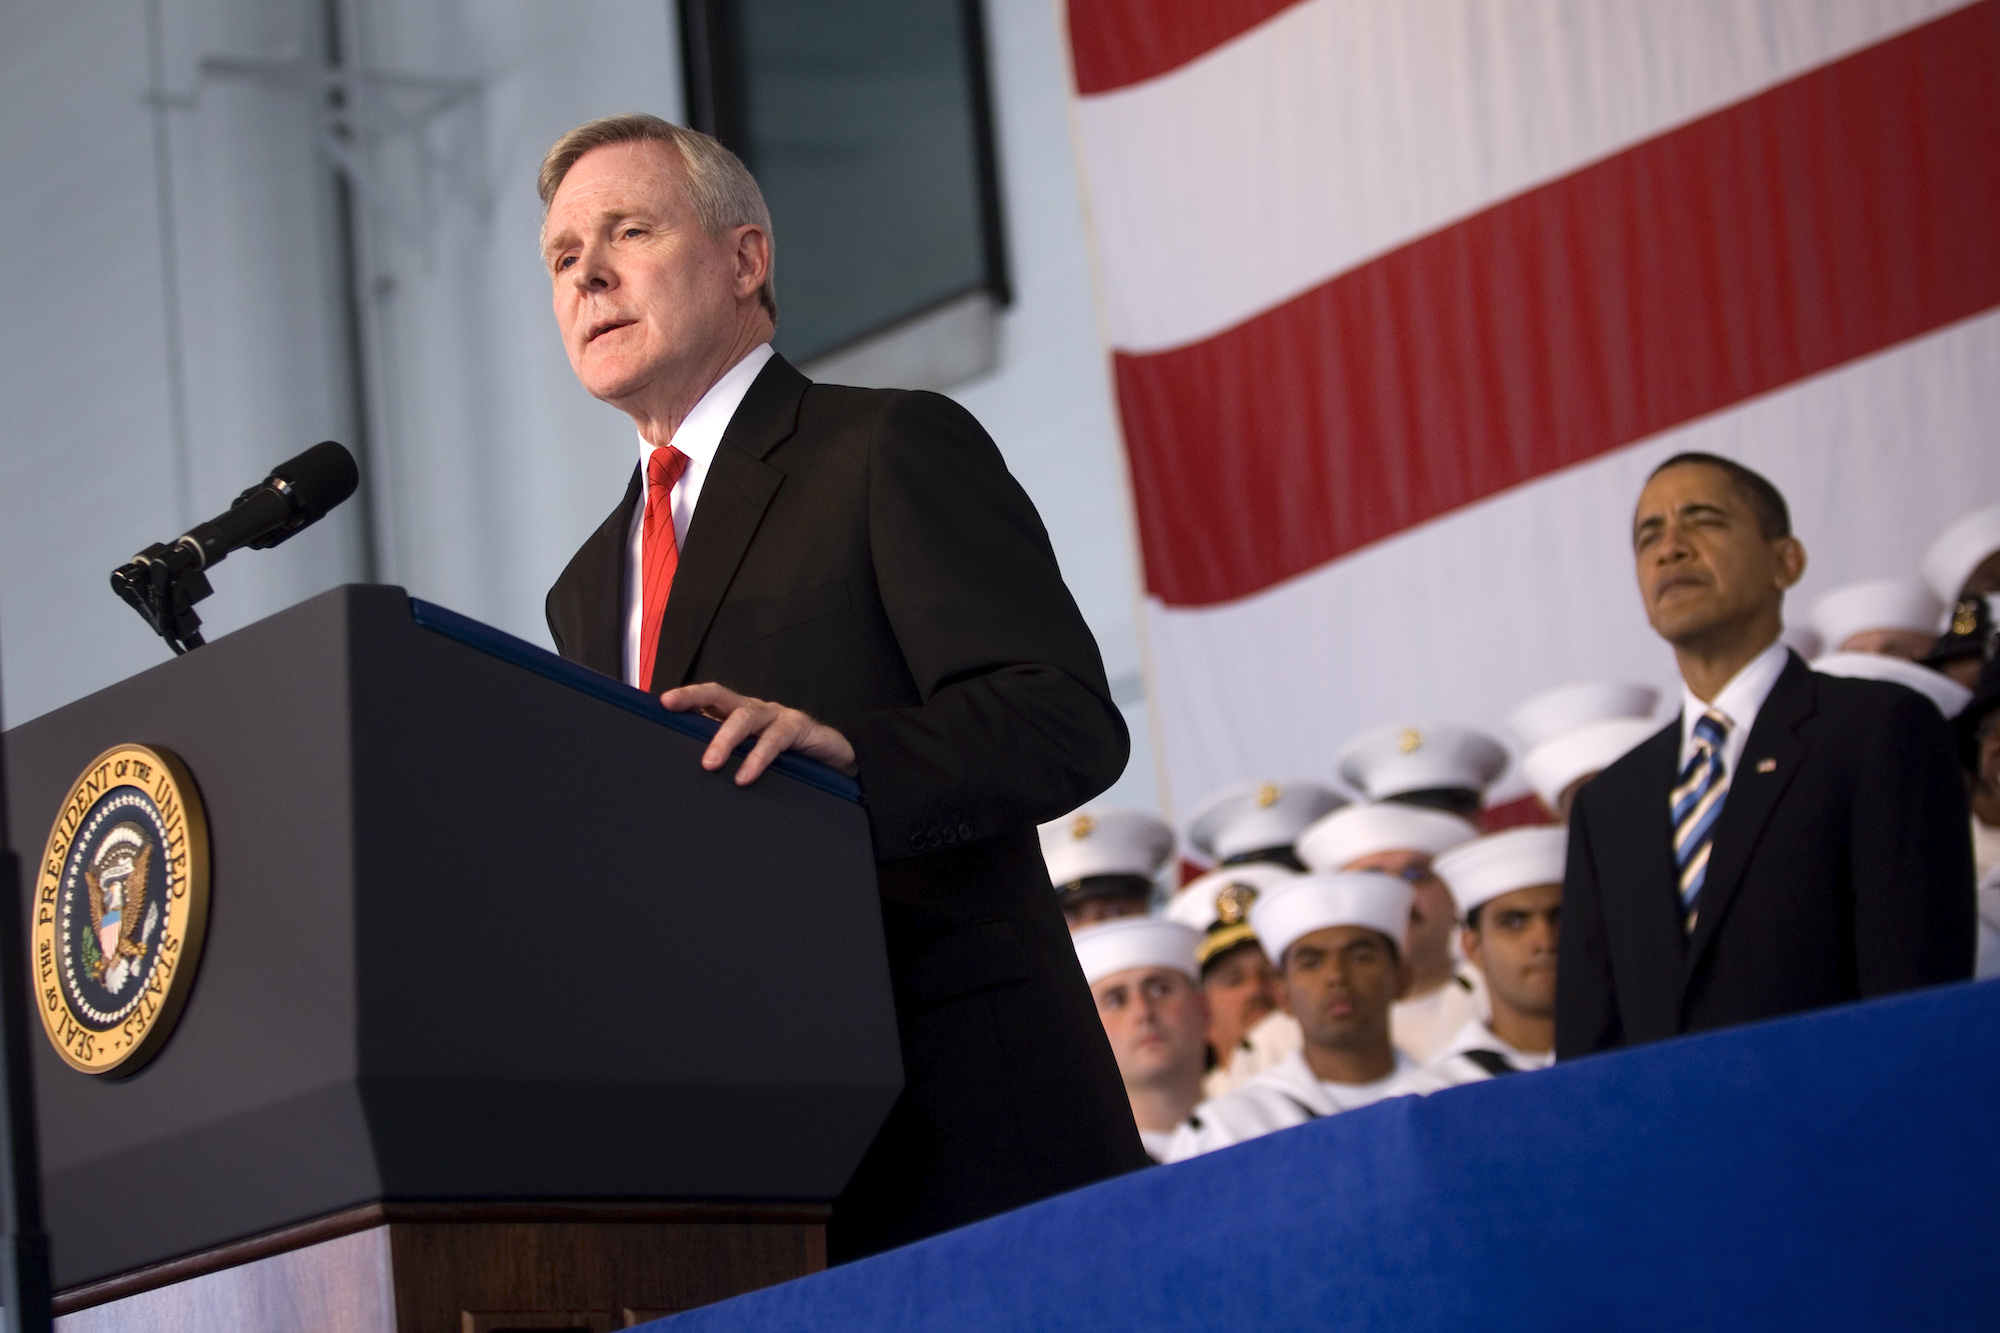 Ray Mabus stands at a podium with president Barack Obama standing behind him